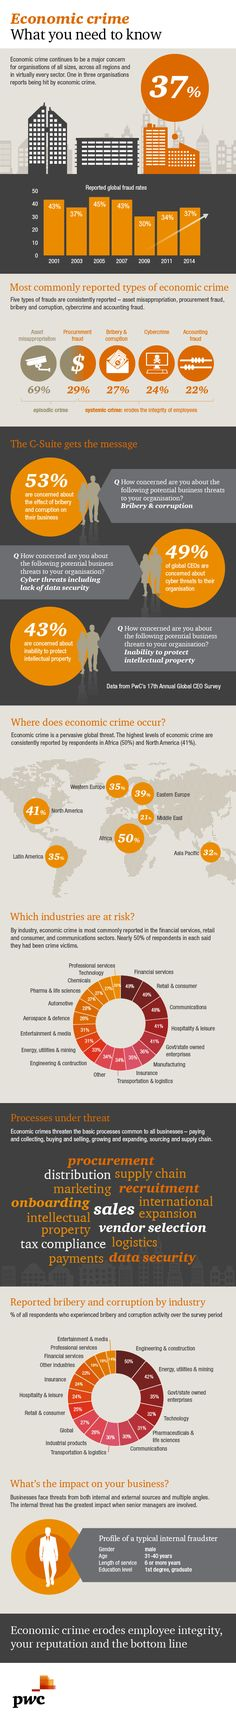 Global Economic Crime 2014 Survey: Fraud, Corruption and Cybercrime: PwC Forensic Services